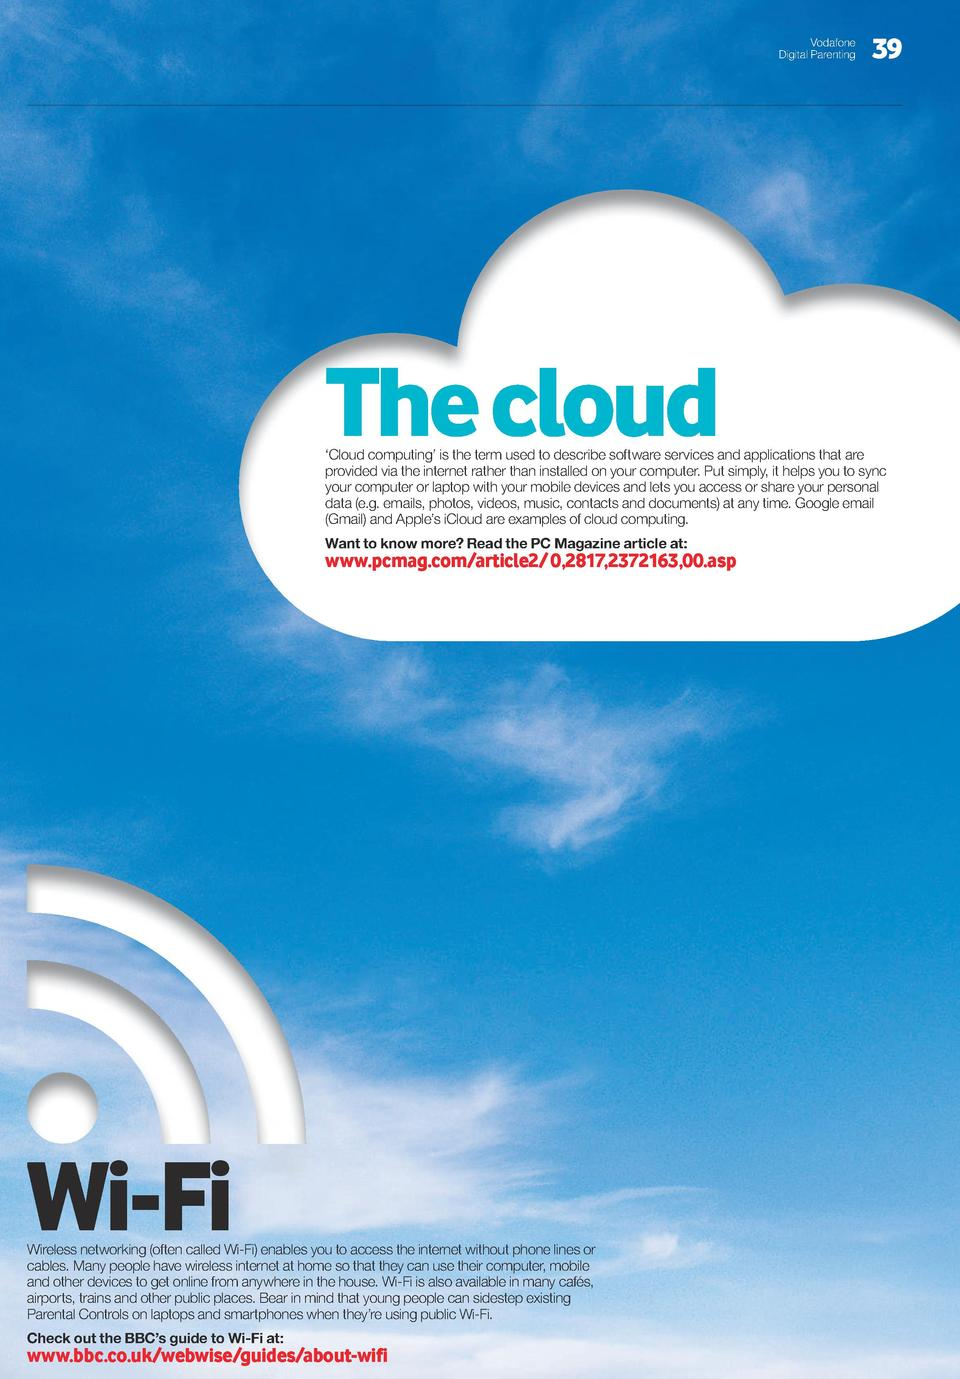 Vodafone Digital Parenting  The cloud  39     Cloud computing    is the term used to describe software services and applic...